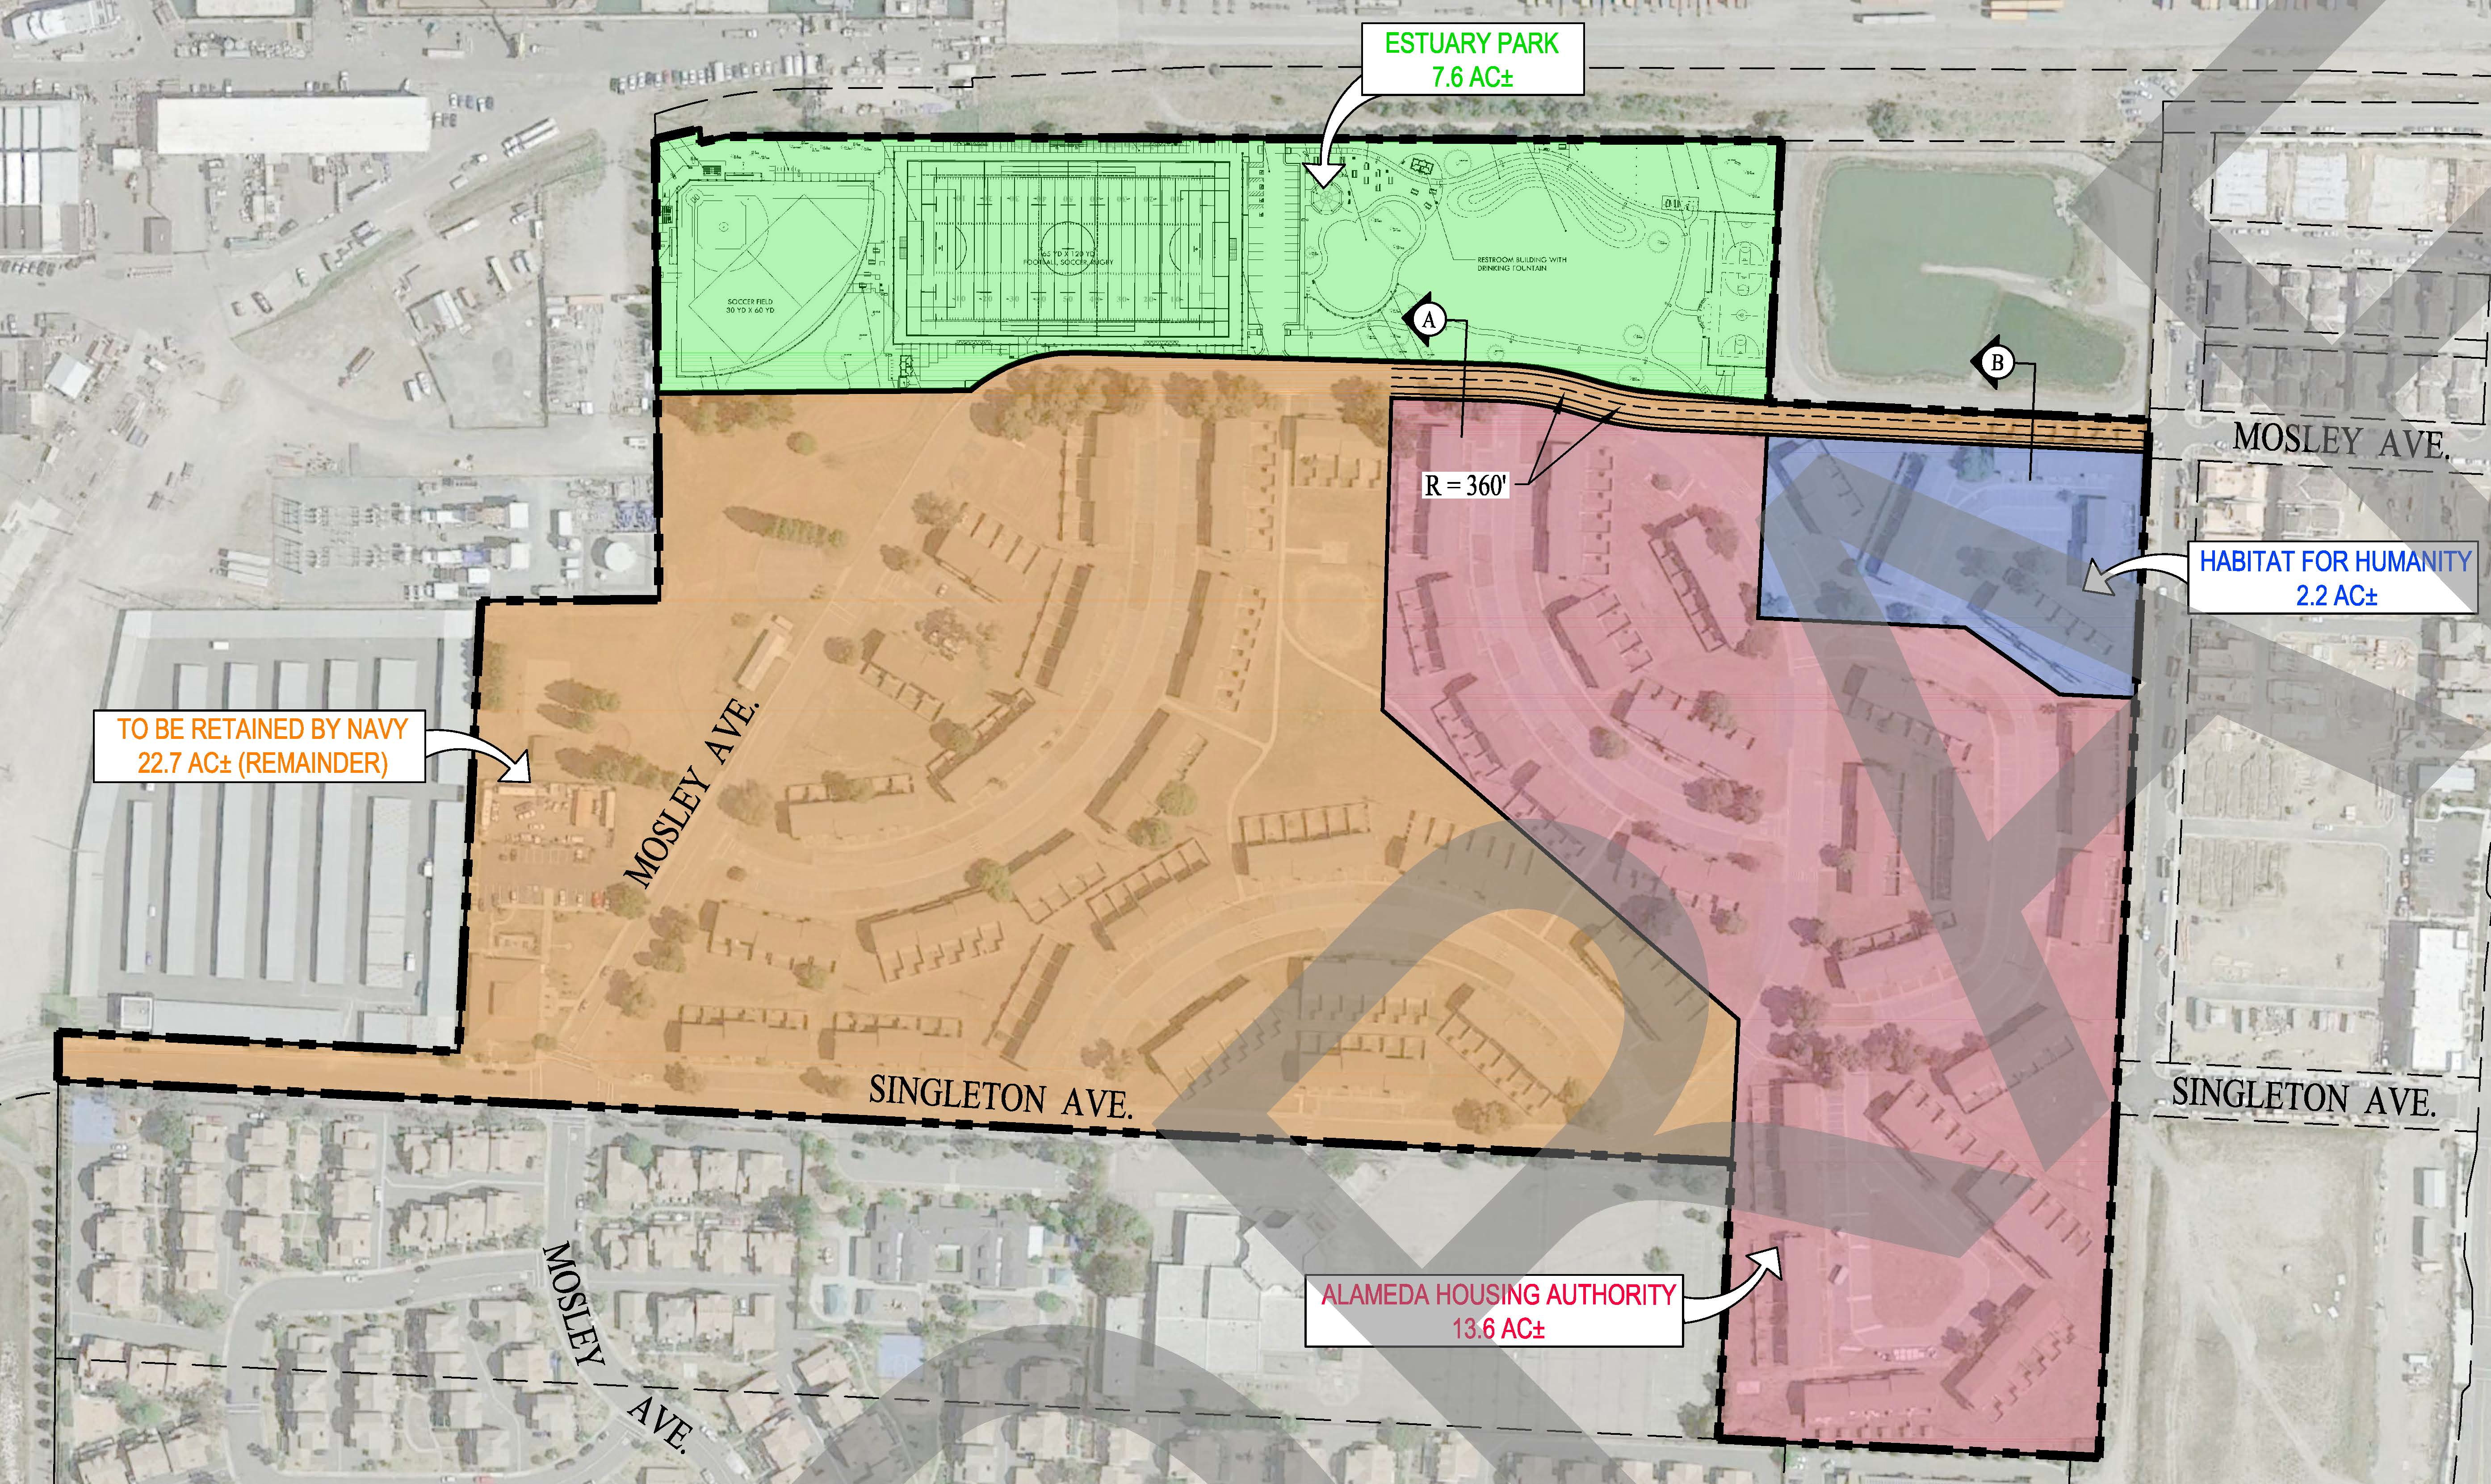 Draft map prepared by the city of Alameda showing proposed Housing Authority, Habitat for Humanity, and private developer parcels. Pending final approval. Dusty rose area going to Housing Authority, blue to Habitat for Humanity, tan to private developer. Click on map to enlarge.